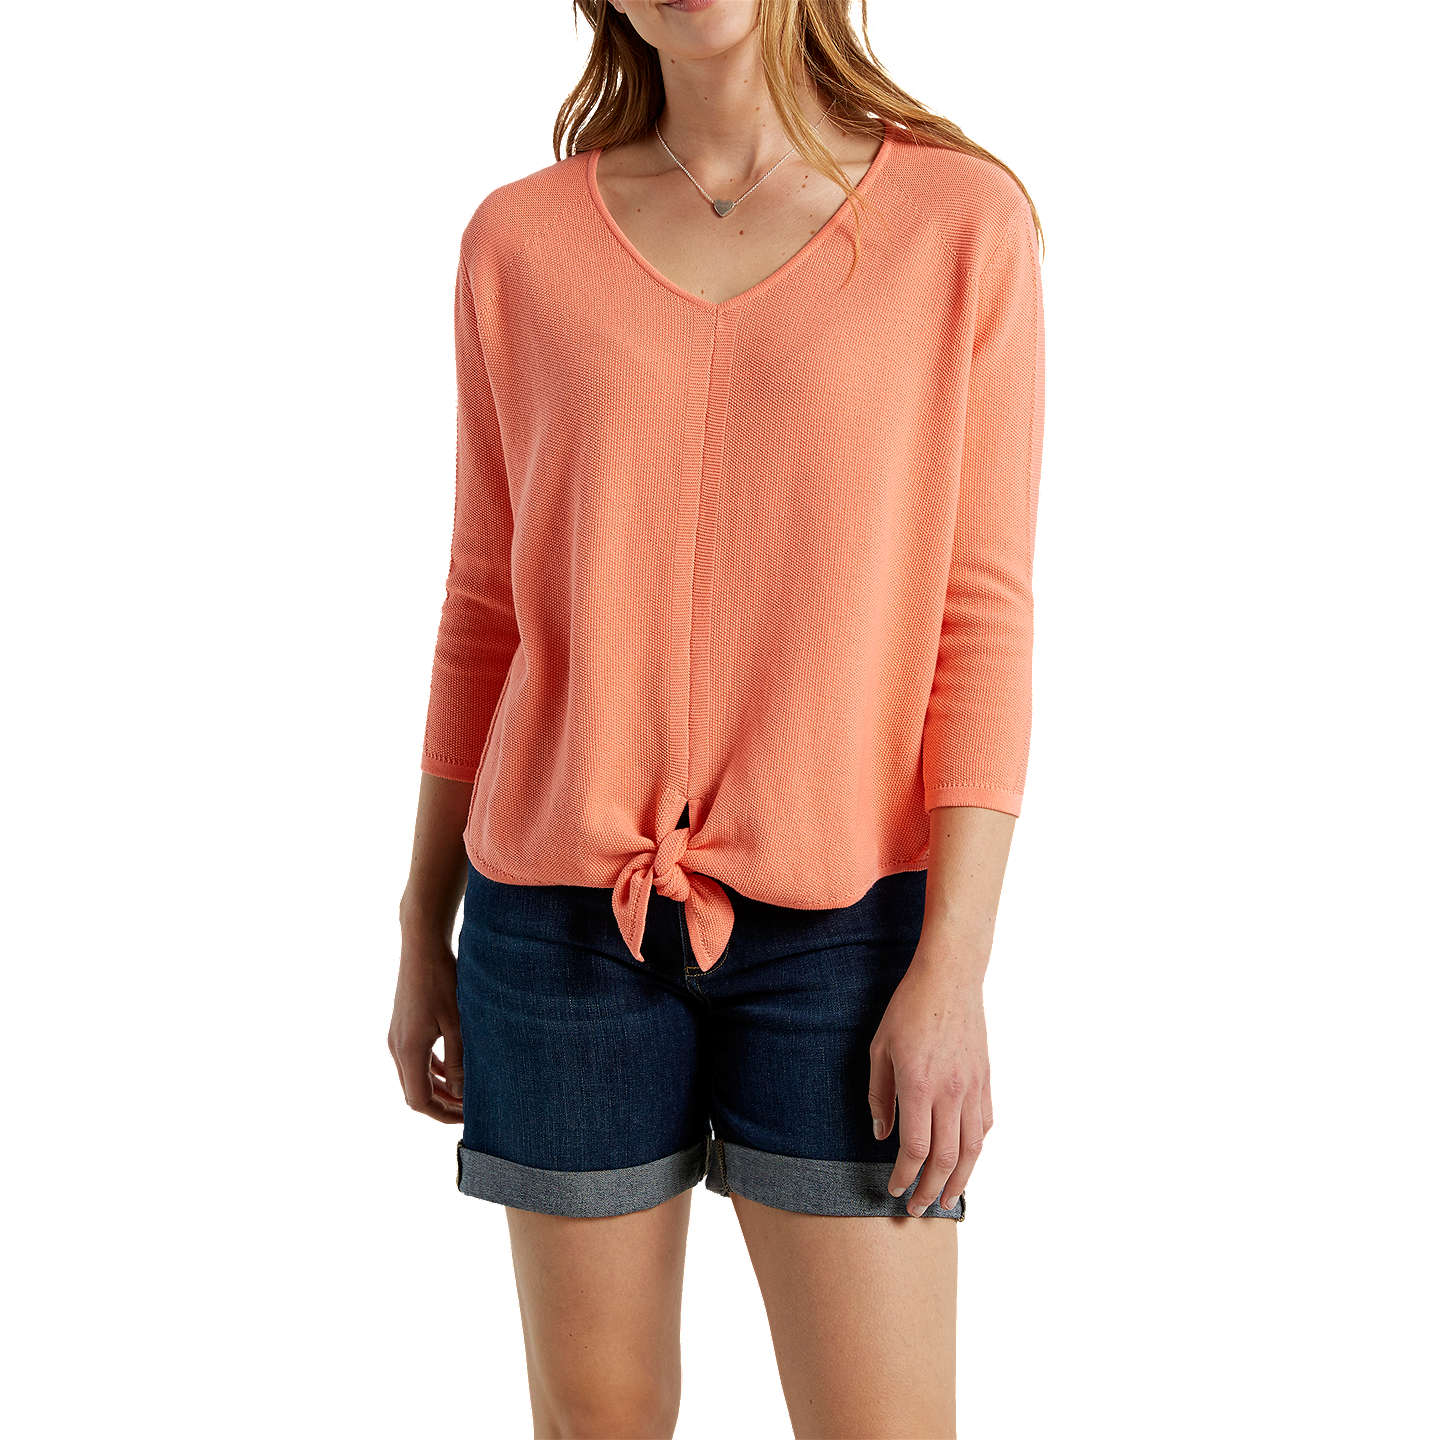 BuyWhite Stuff Canvas Tie Jumper, Apricot, 6 Online at johnlewis.com